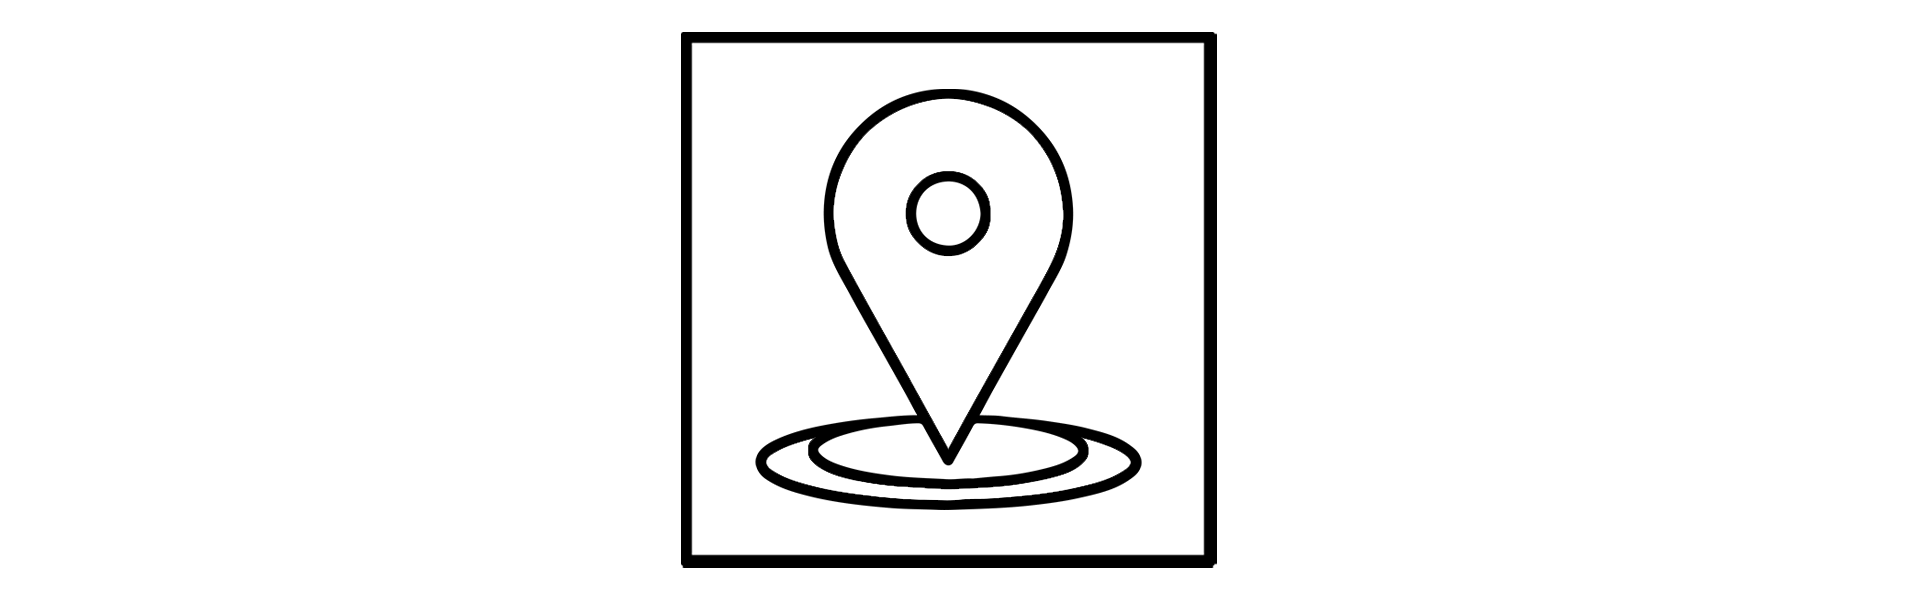 SM2-Locate-white with black outline-1